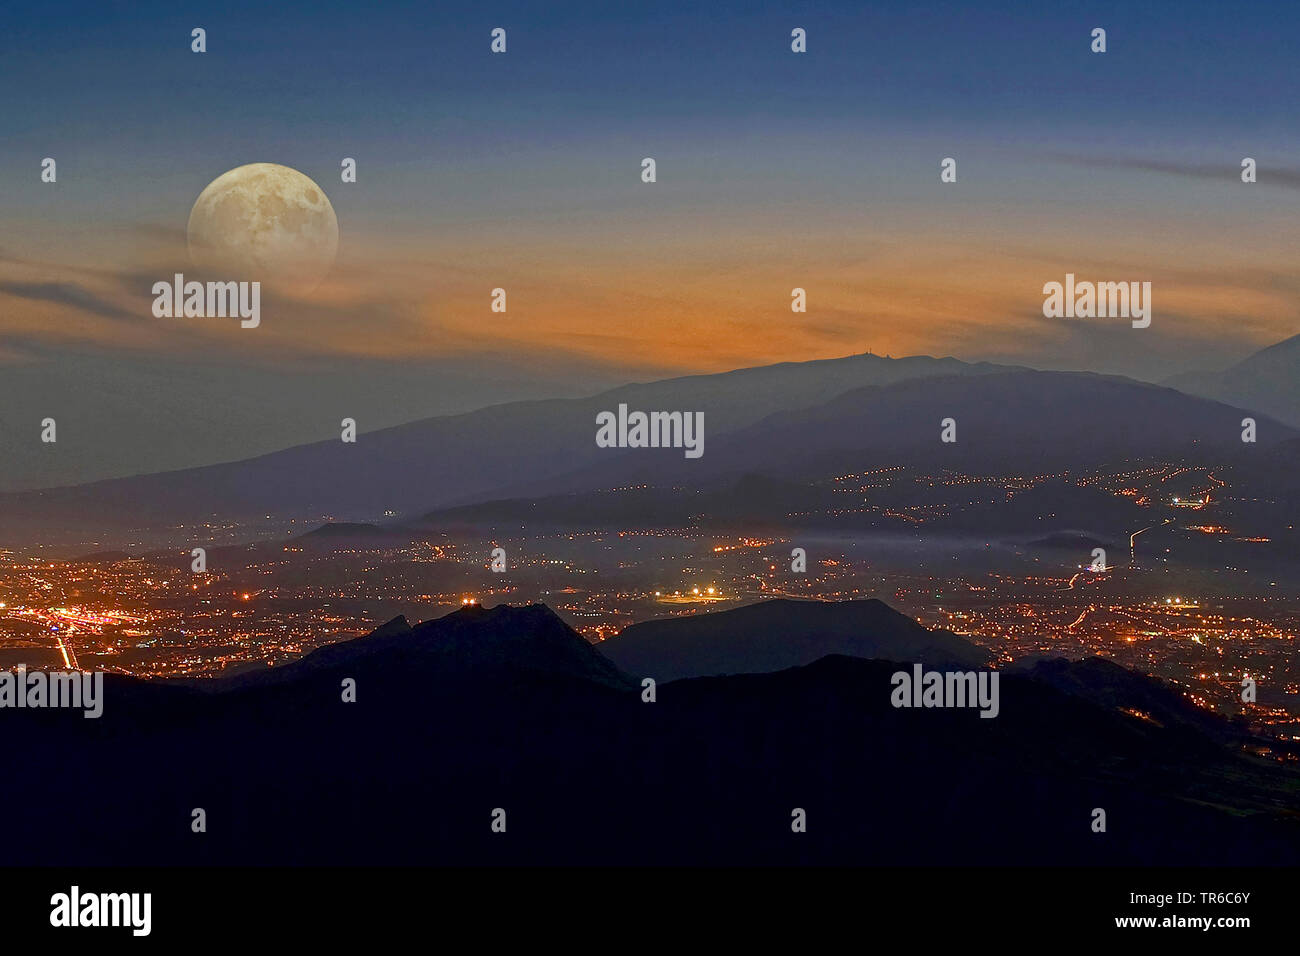 Vollmond ueber dem Pico del Teide, Blick auf Santa Cruz, Kanaren, Teneriffa | full moon over Mount Teide, view of Santa Cruz, Canary Islands, Tenerife - Stock Image